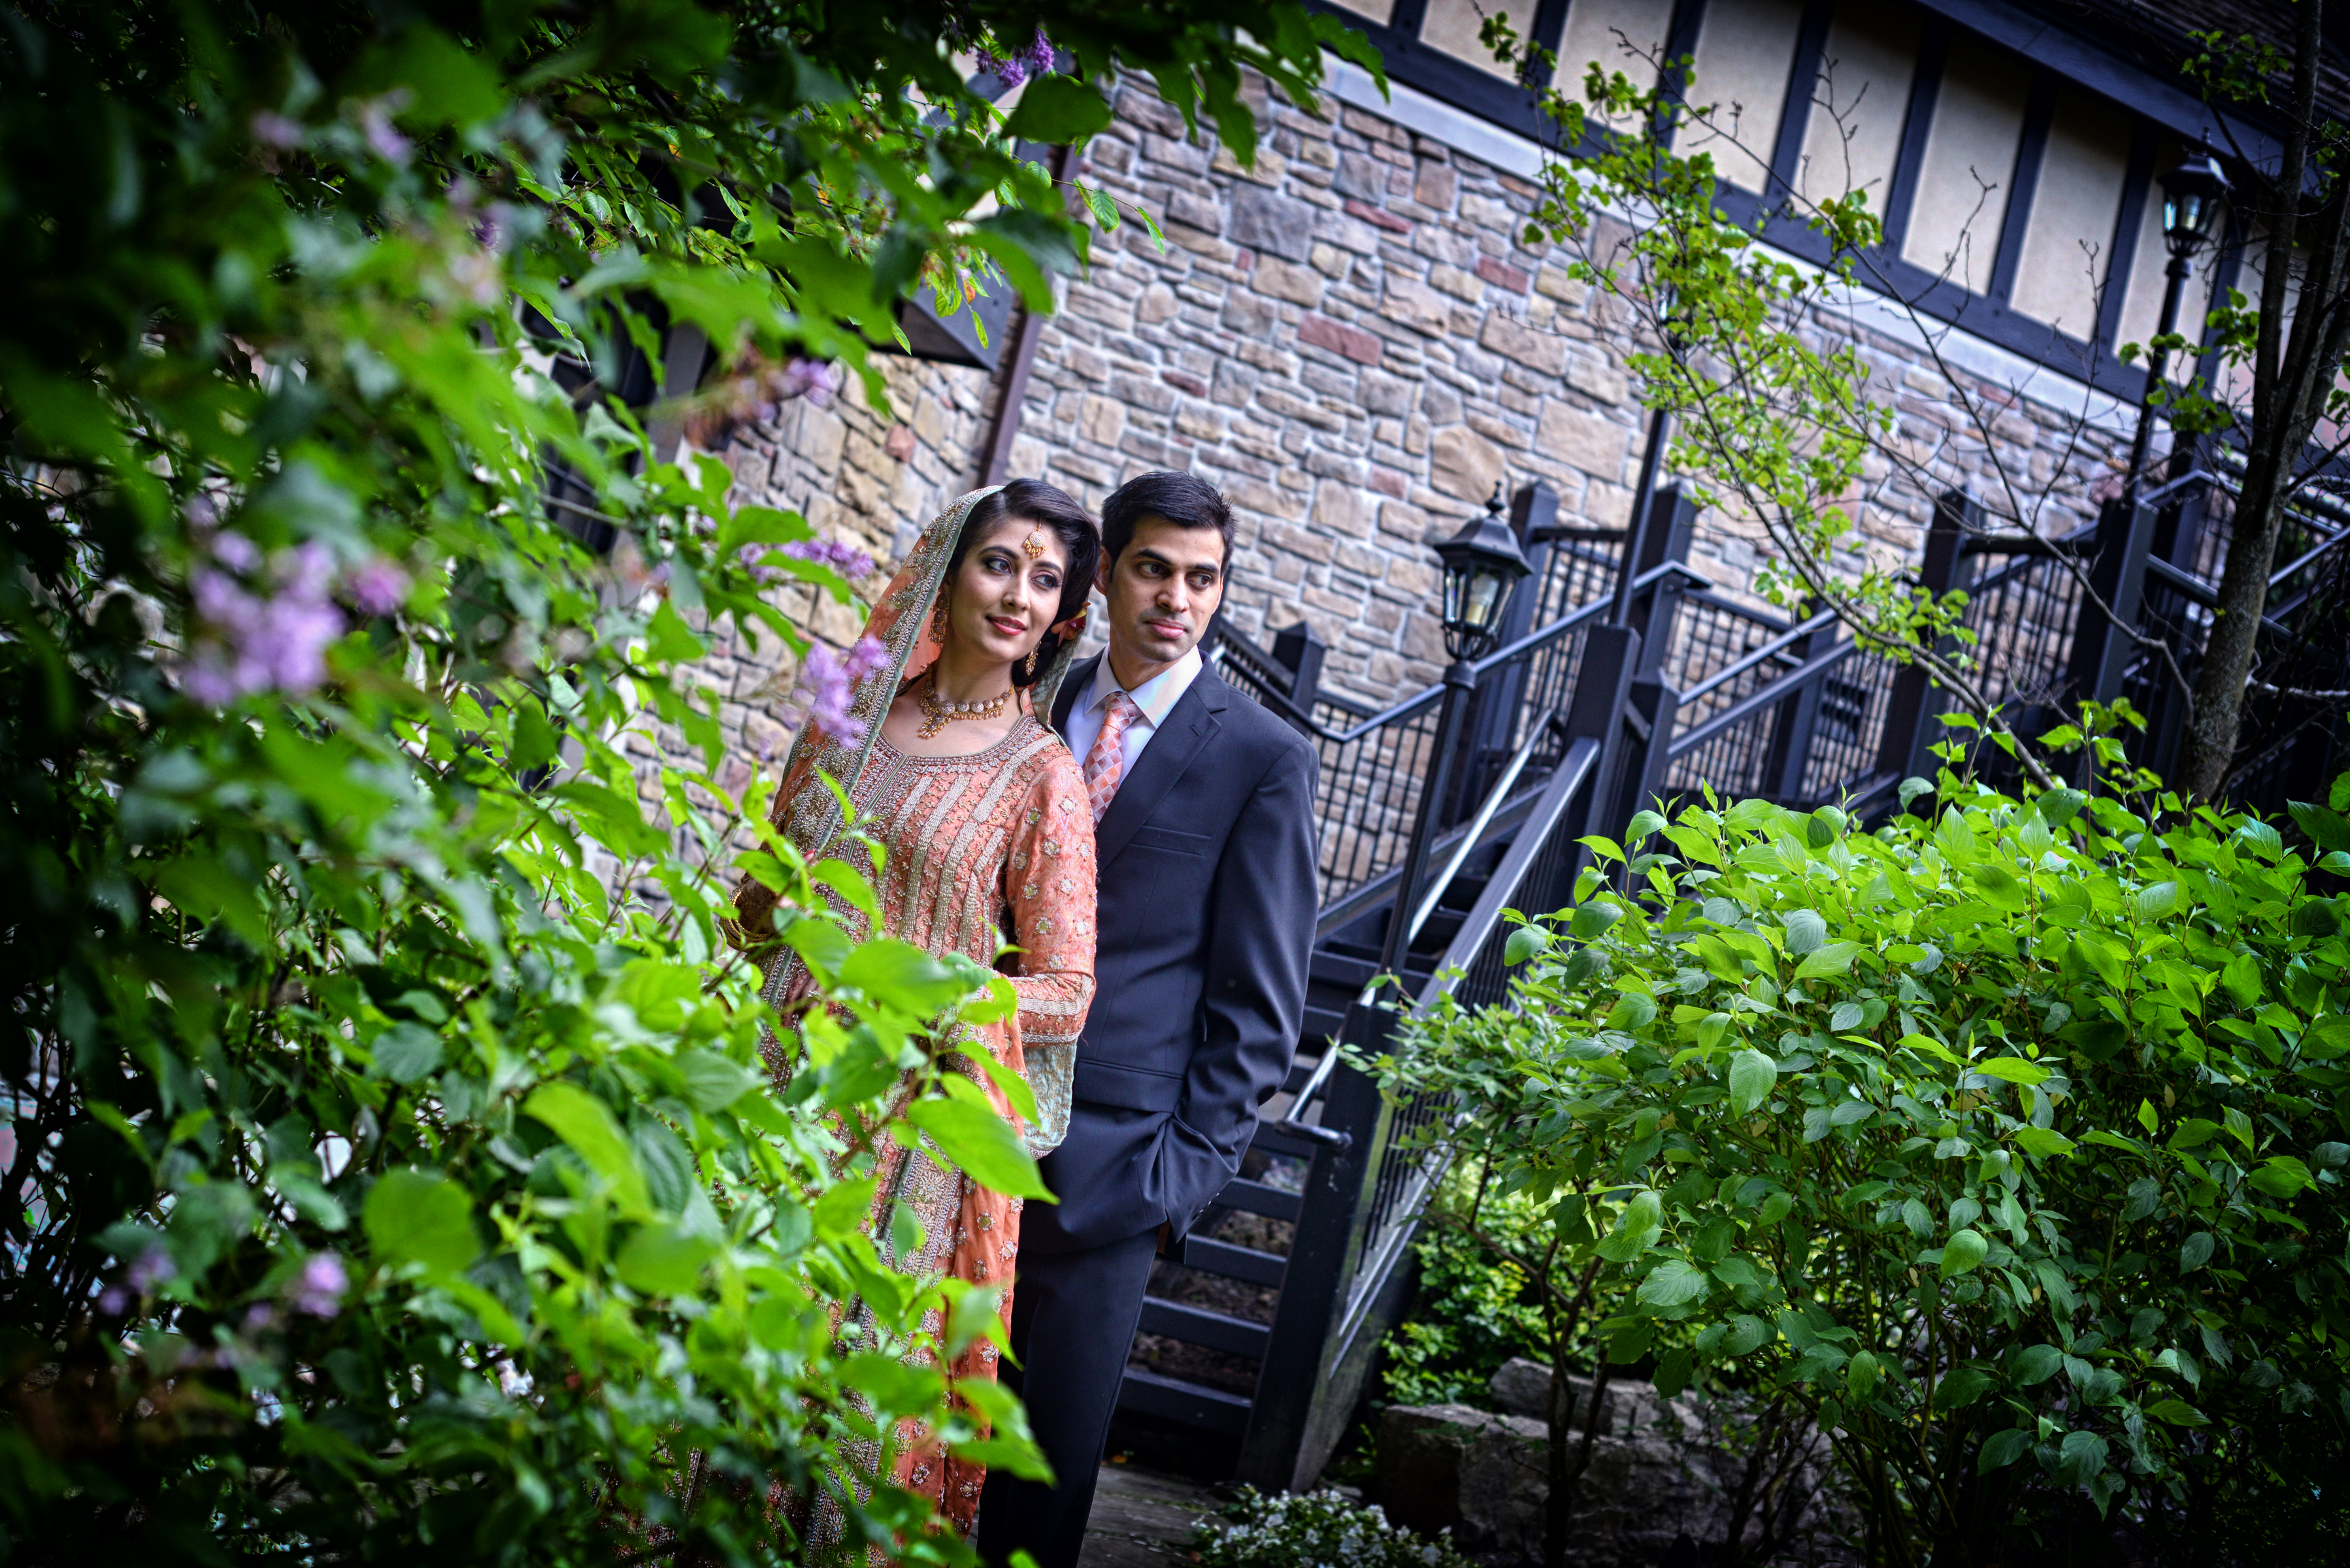 Old Mill Spa And Inn Photography And Video Weddings Photographic Memories